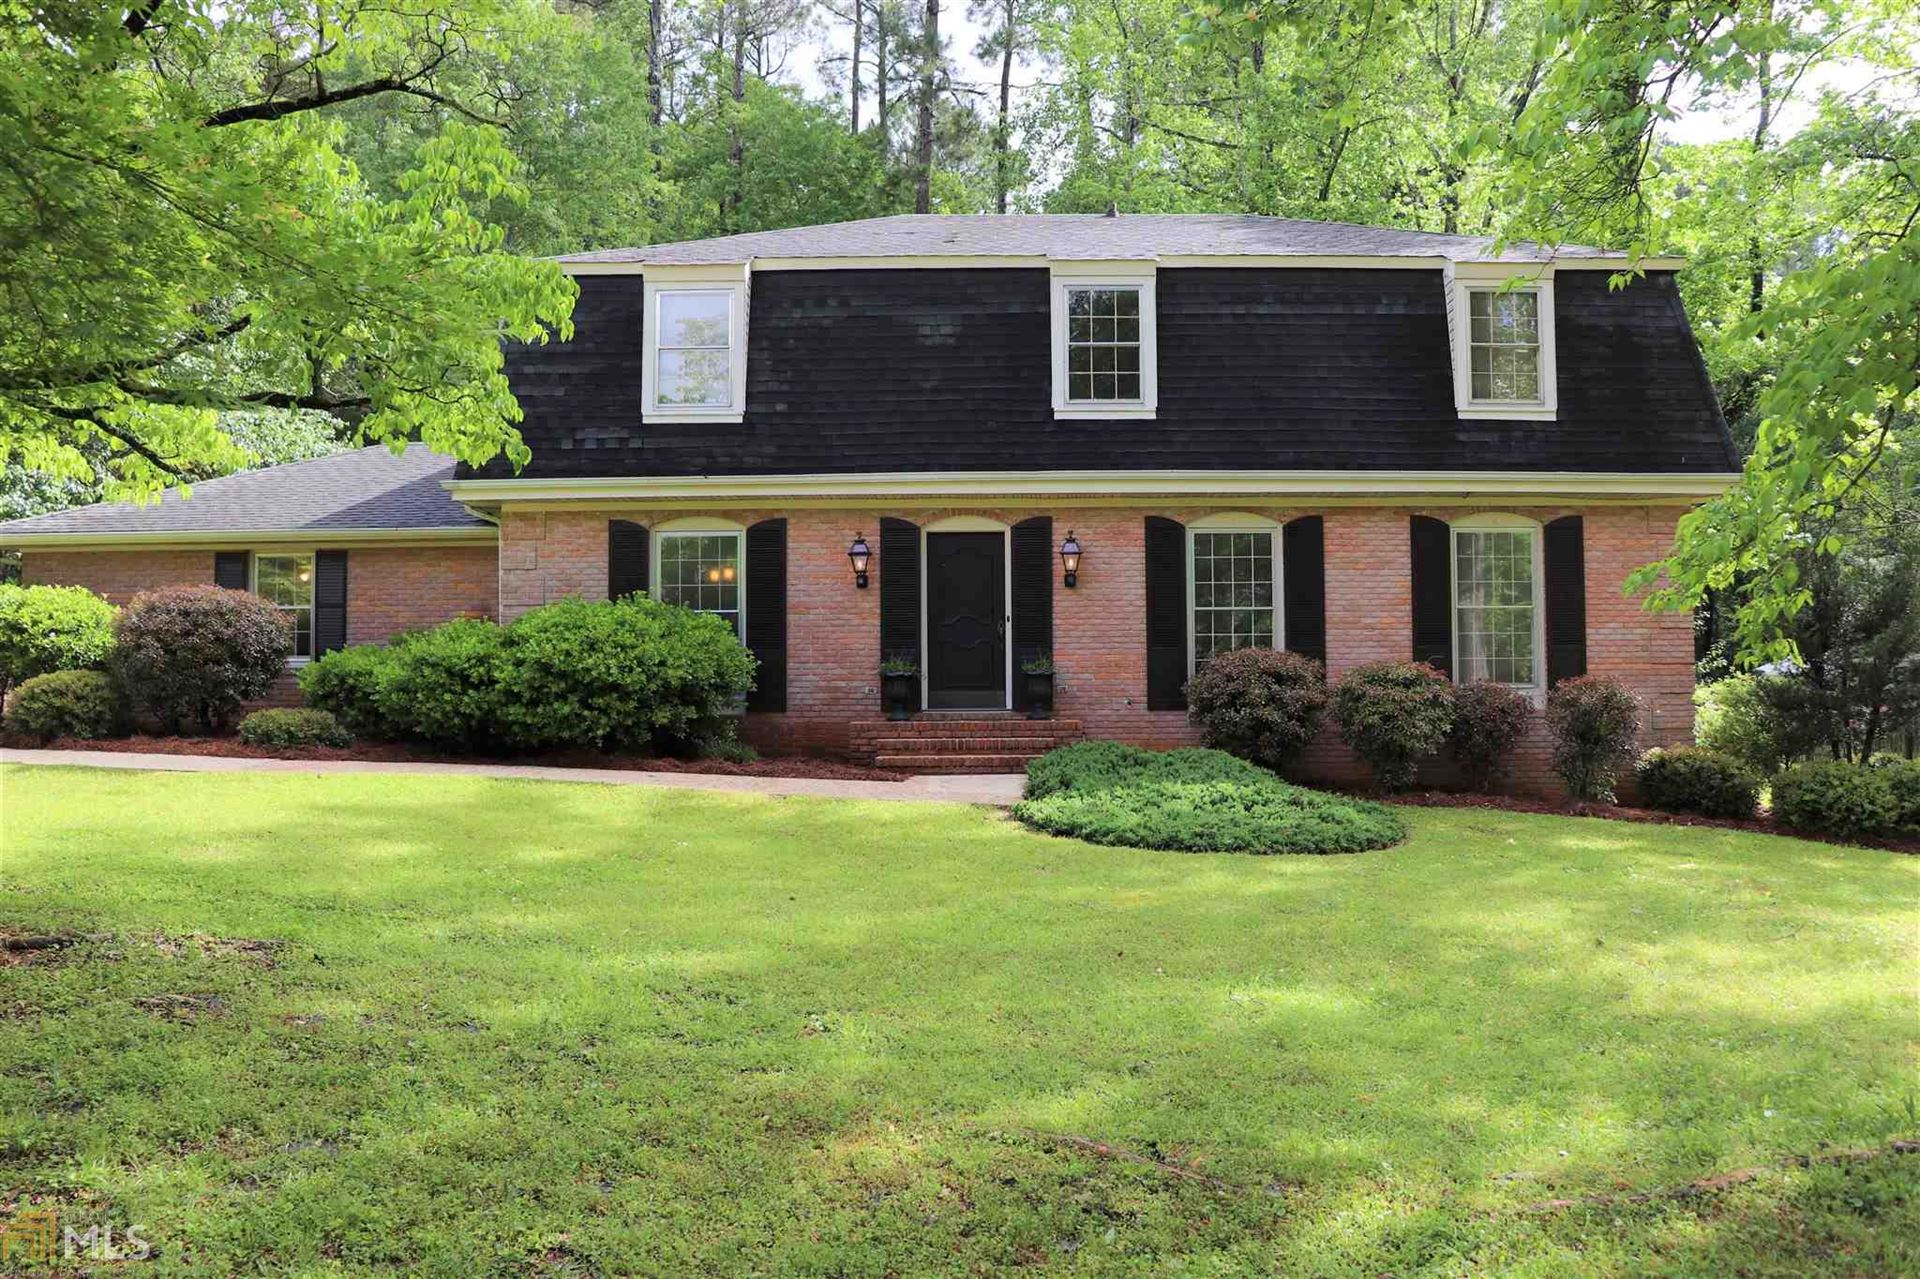 708 Wisteria Way, LaGrange, GA 30240 - #: 8775541